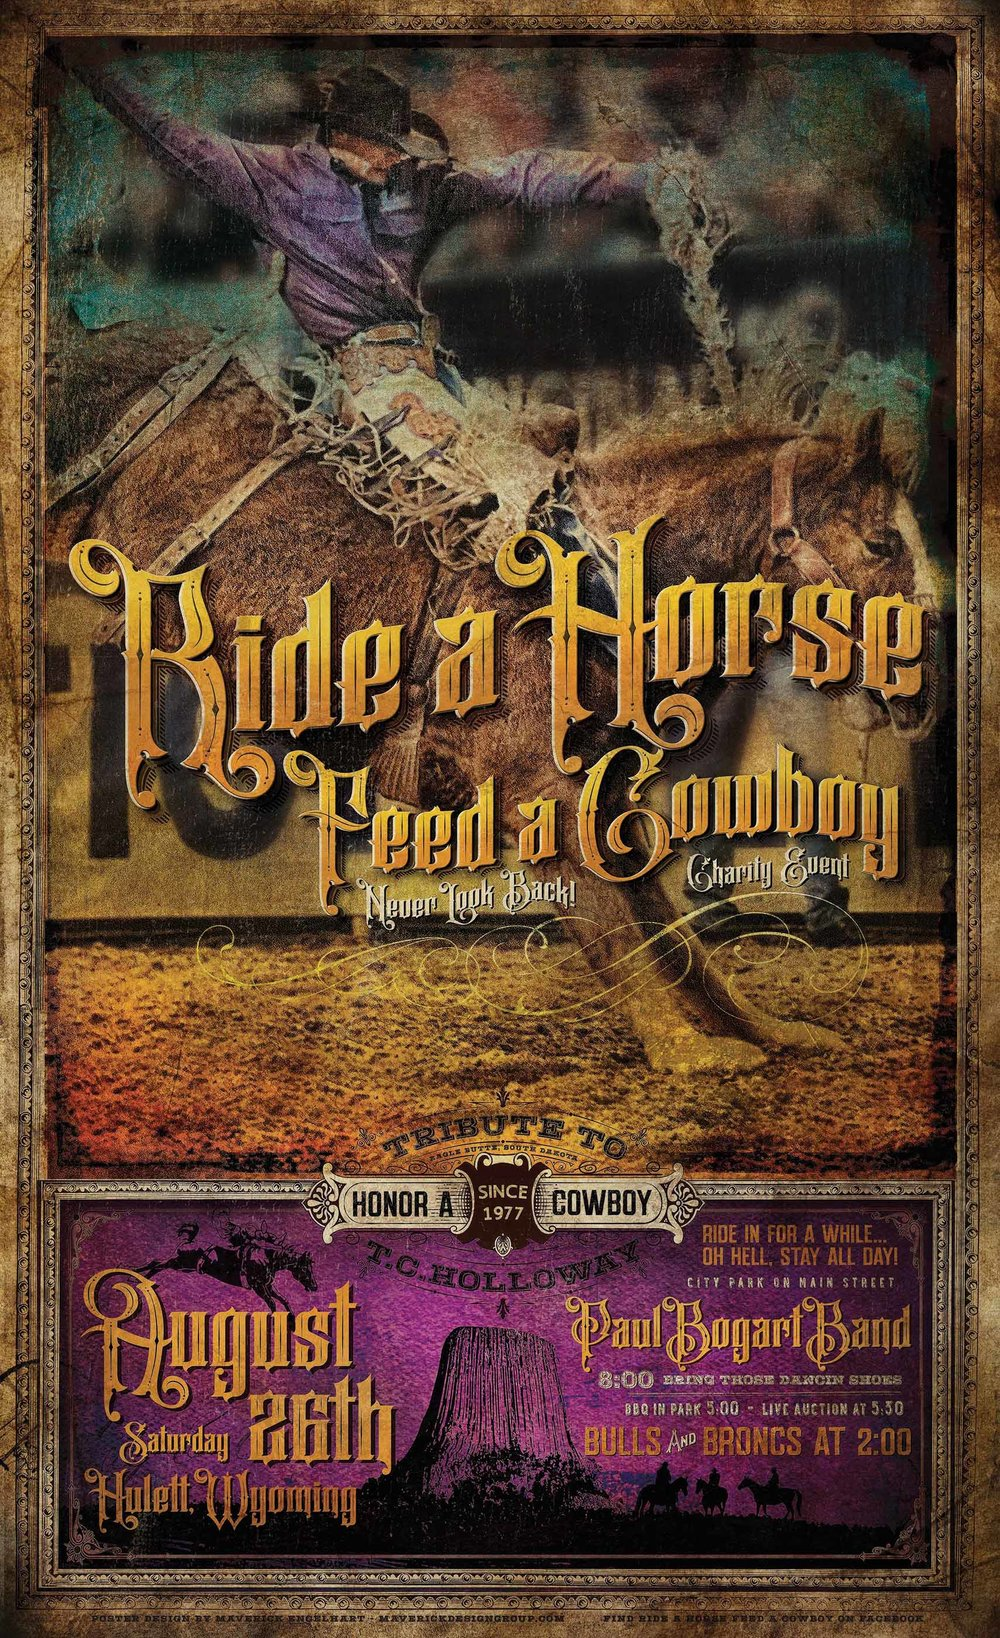 2017 Ride A Horse Feed A Cowboy Poster Design